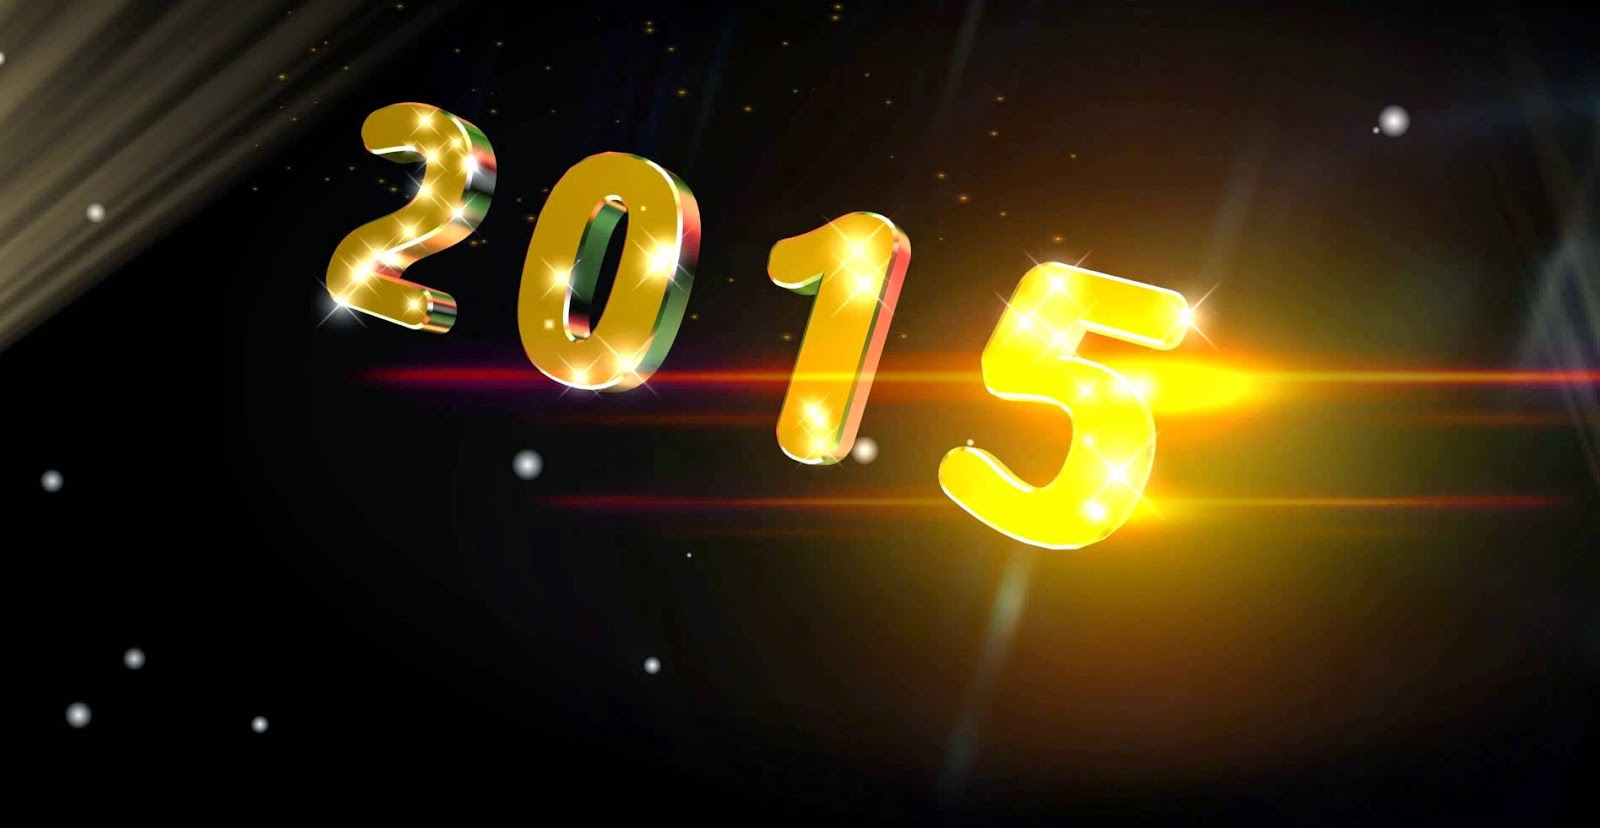 Top Rated Happy New Year 2015 Hd Wallpapers 1600x828